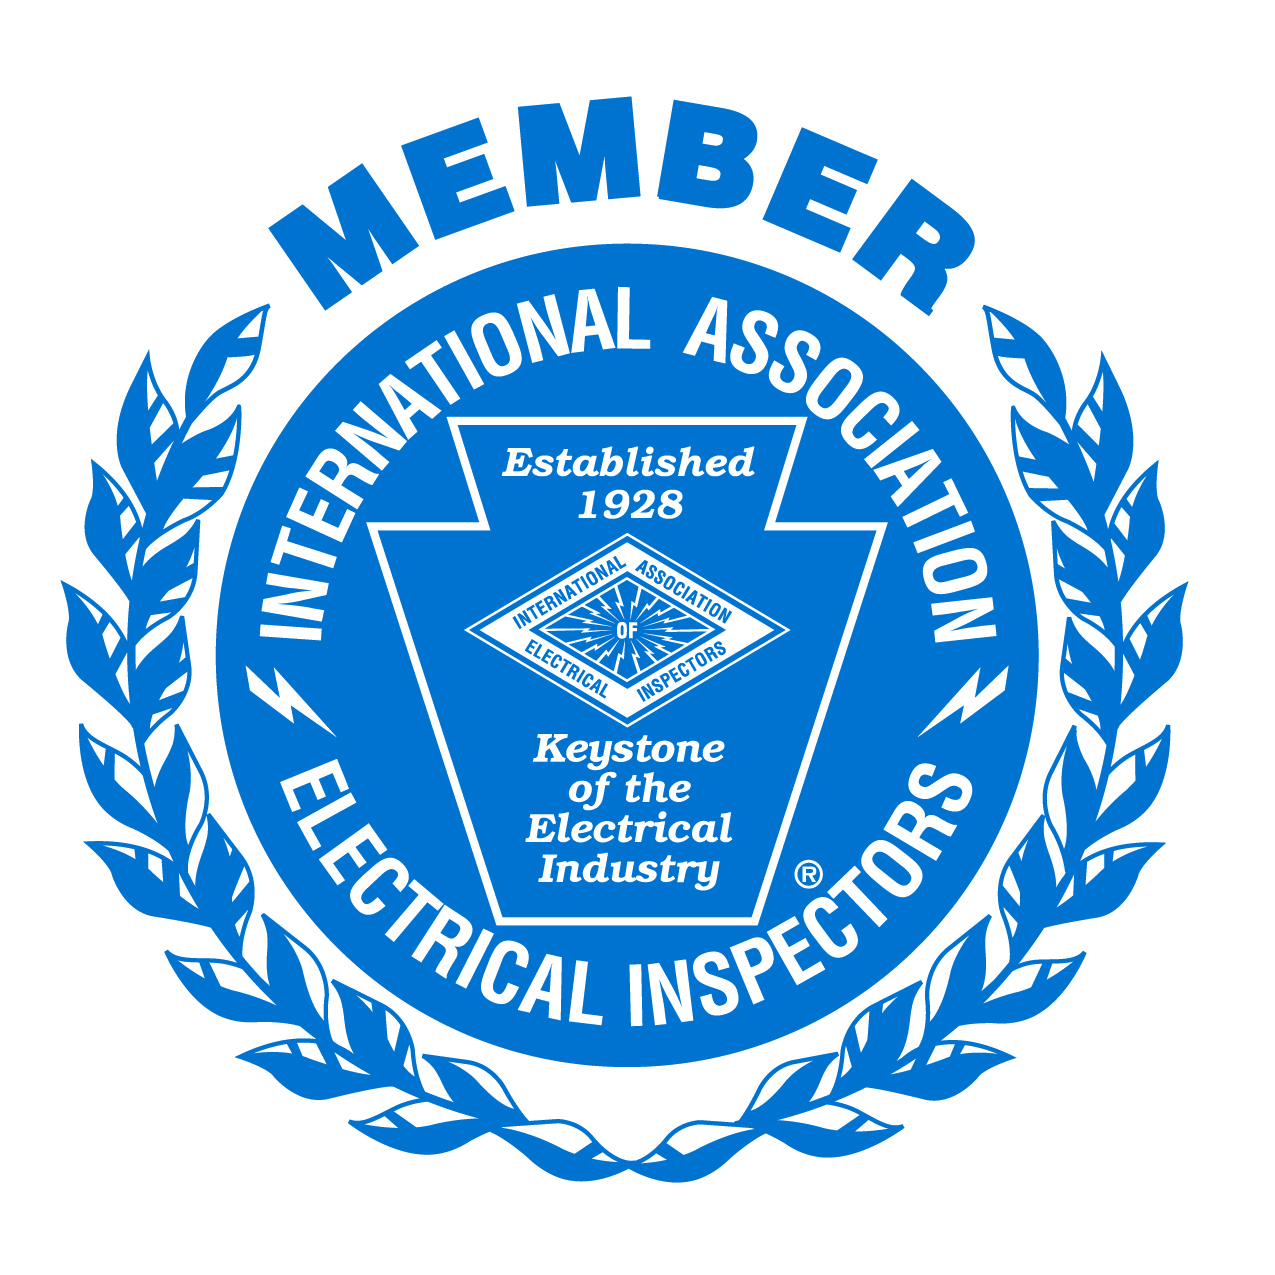 International Association of Electrical Inspectors Seal